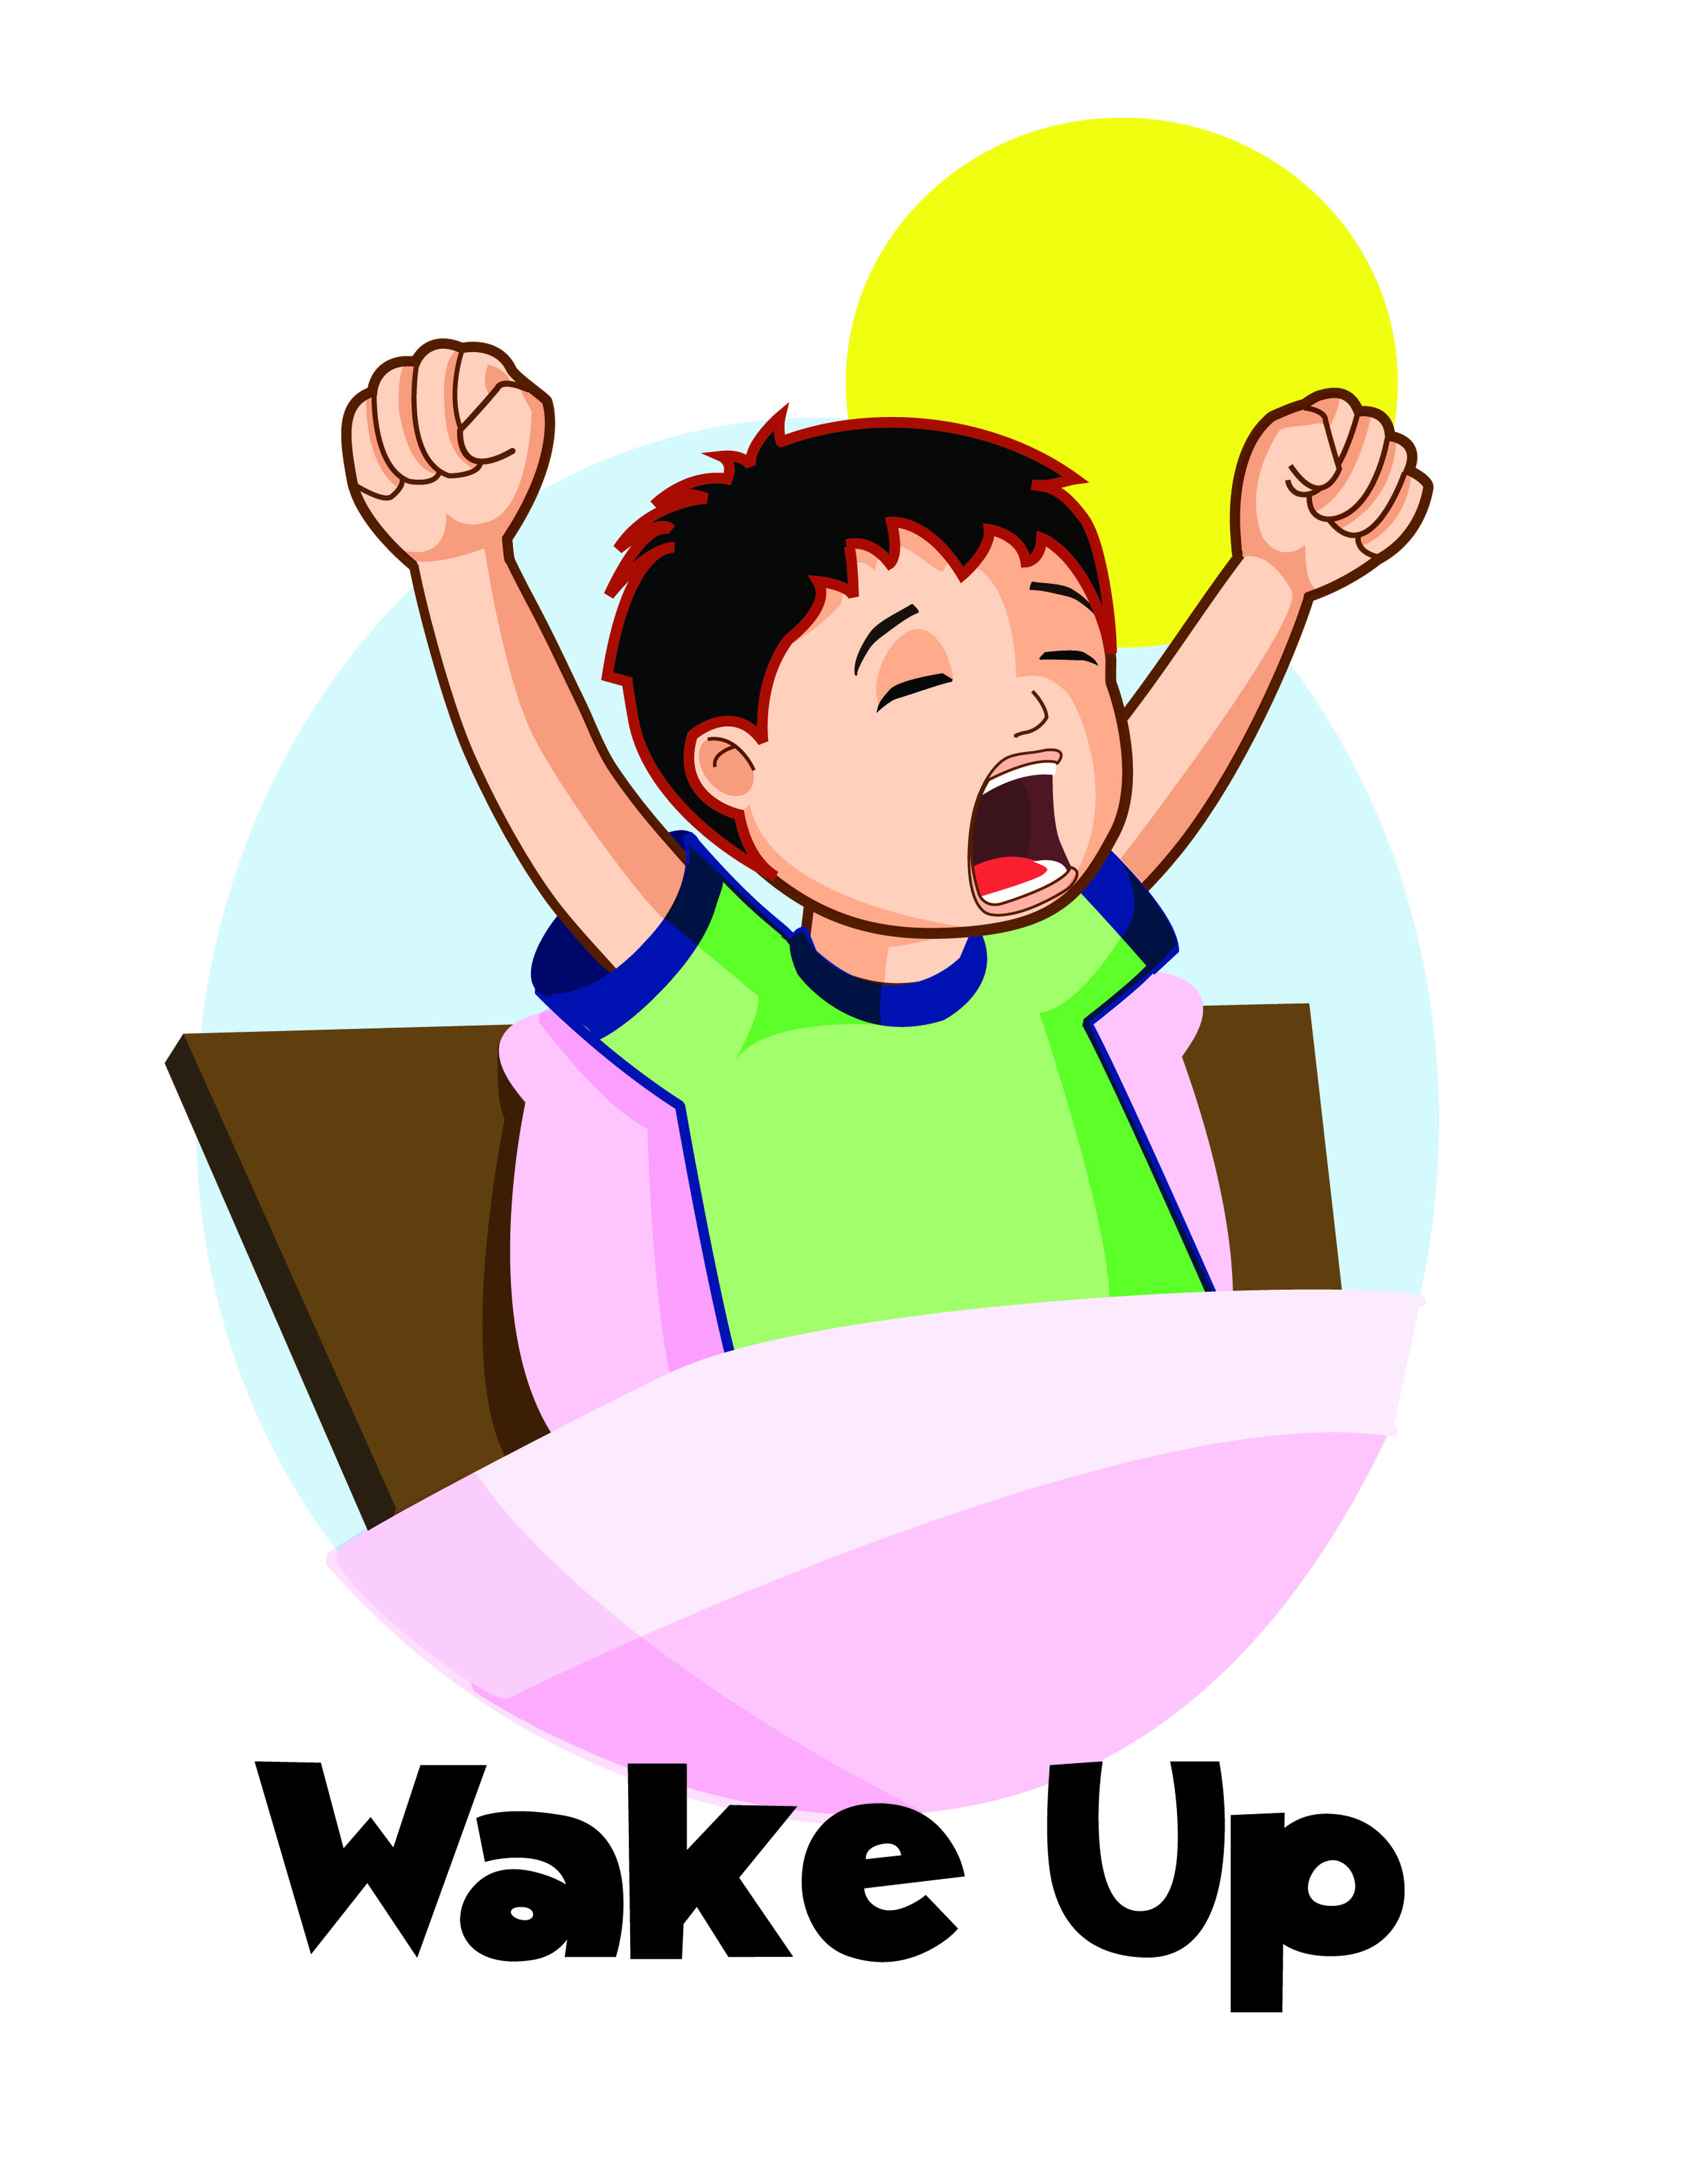 Wake Up Clip Art - ClipArt Best